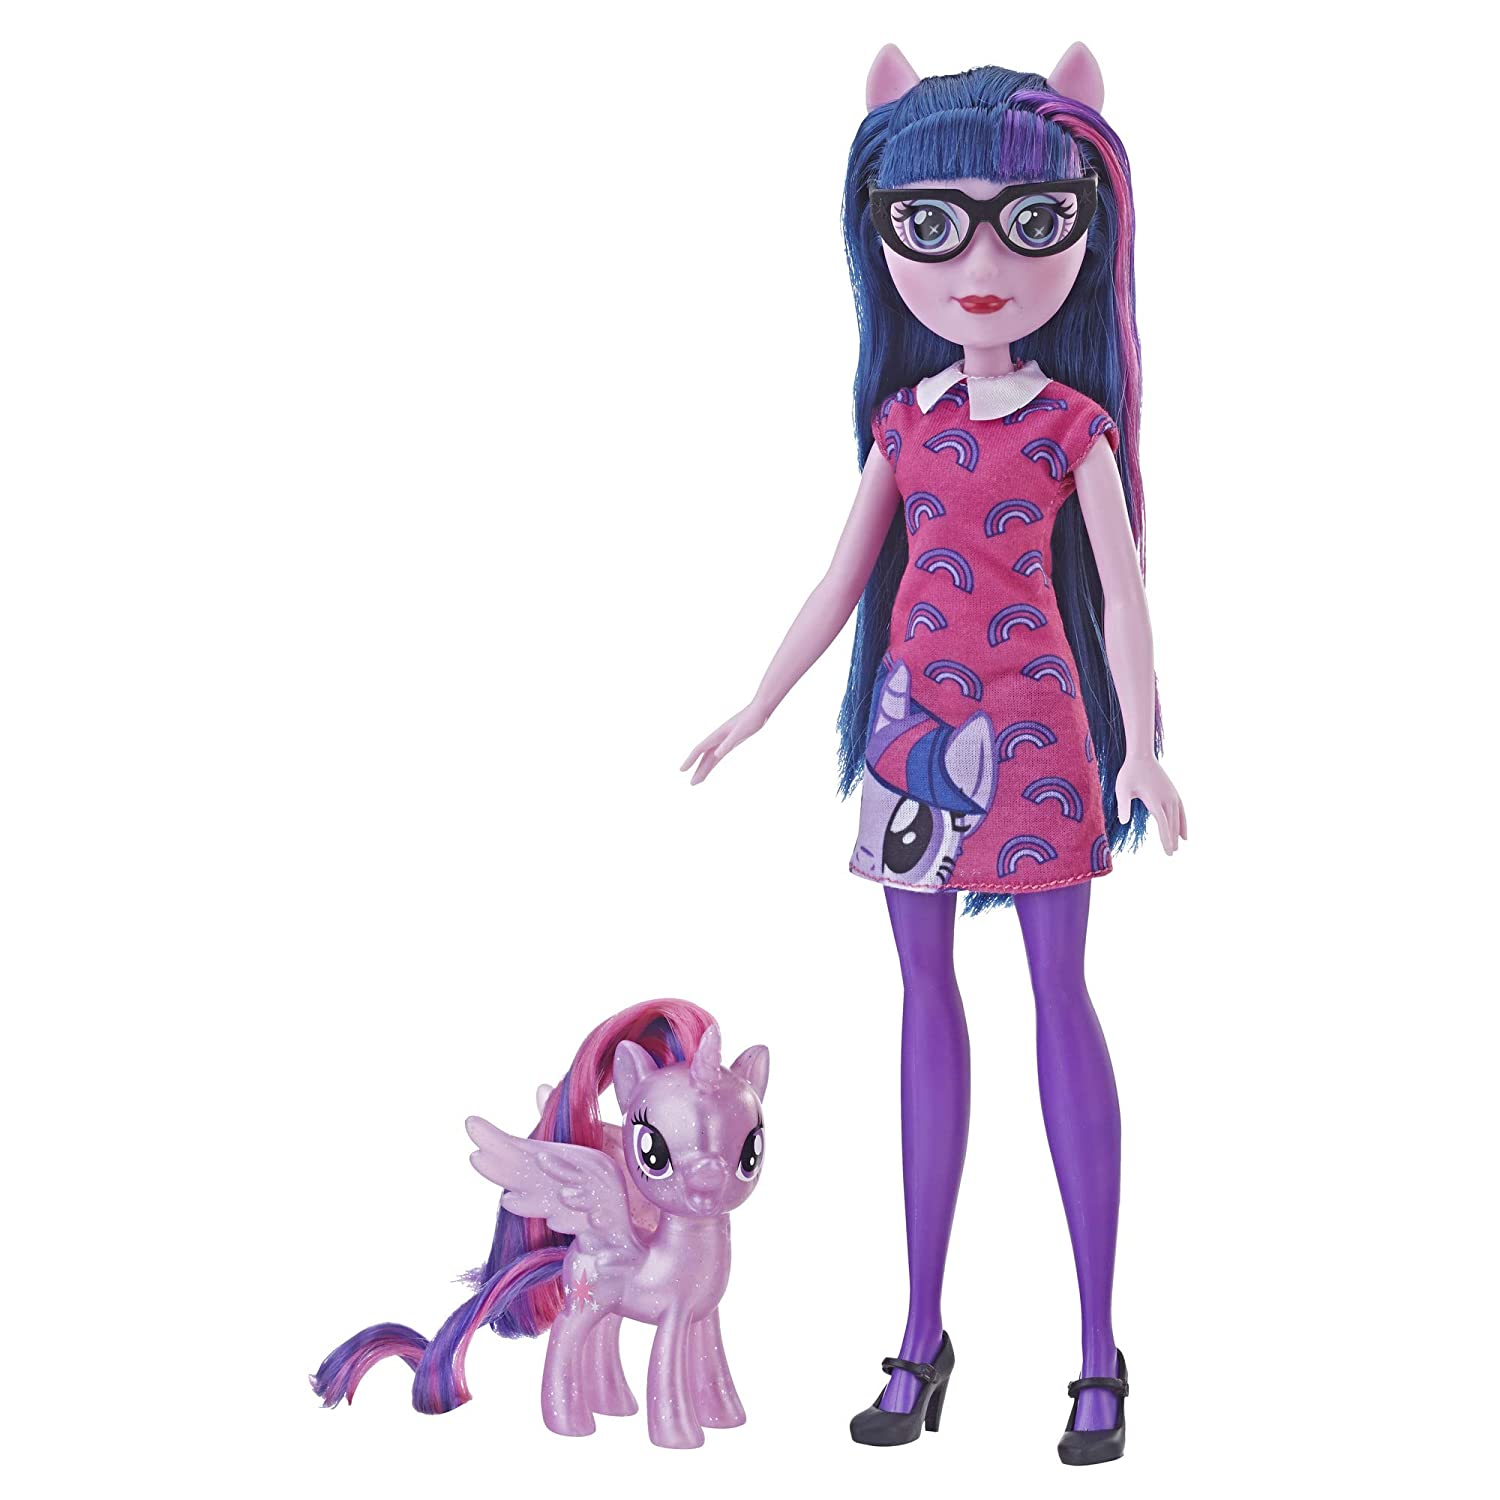 """My Little Pony Equestria Girls Through The Mirror Twilight Sparkle -- 11"""" Fashion Doll with Purple Pony Figure, Removable Outfit & Shoes, Ages 5+"""